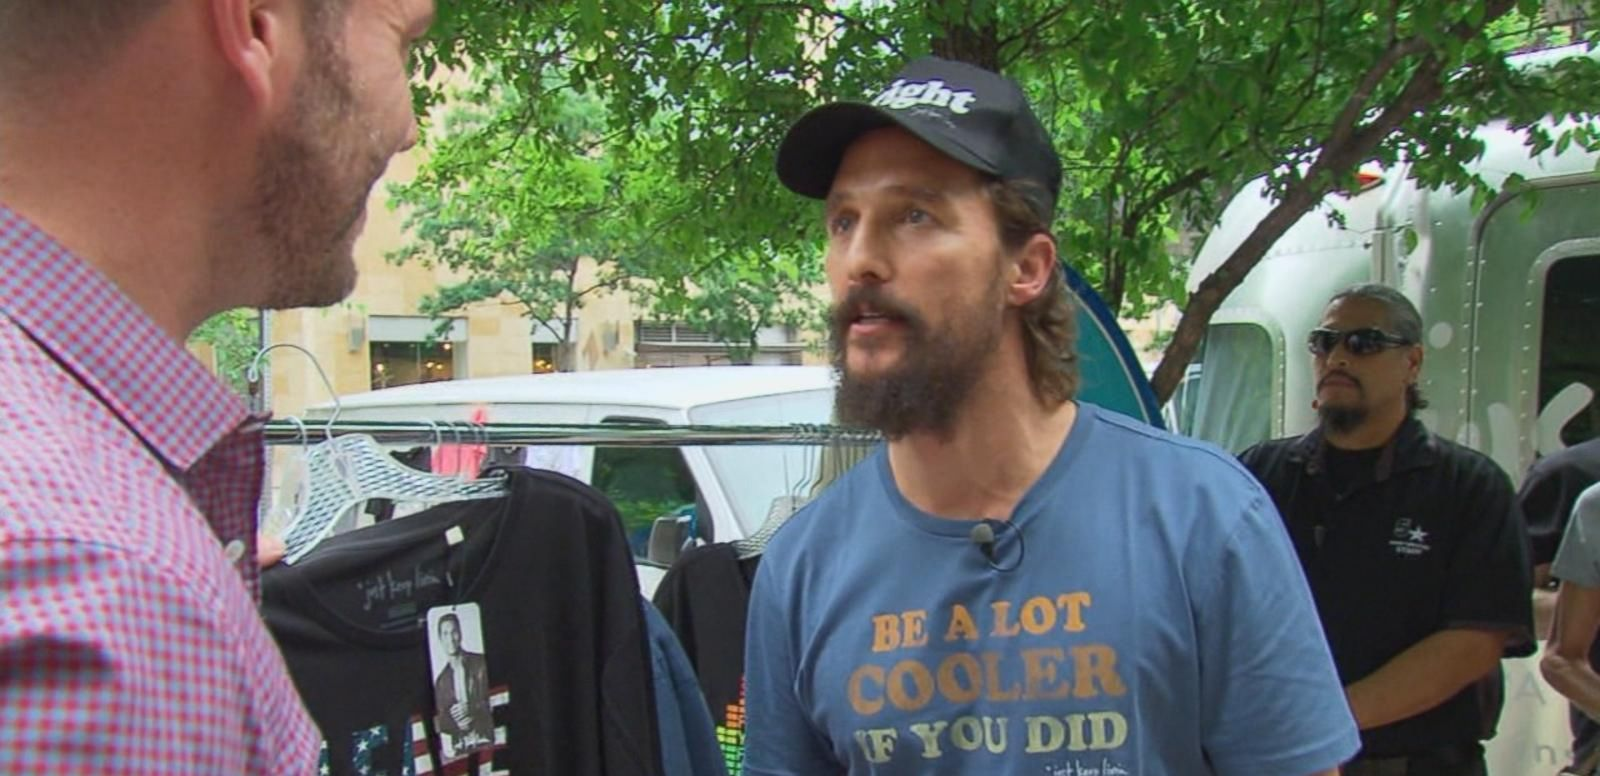 VIDEO: Matthew McConaughey Launches 'Just Keep Livin' Clothing Line